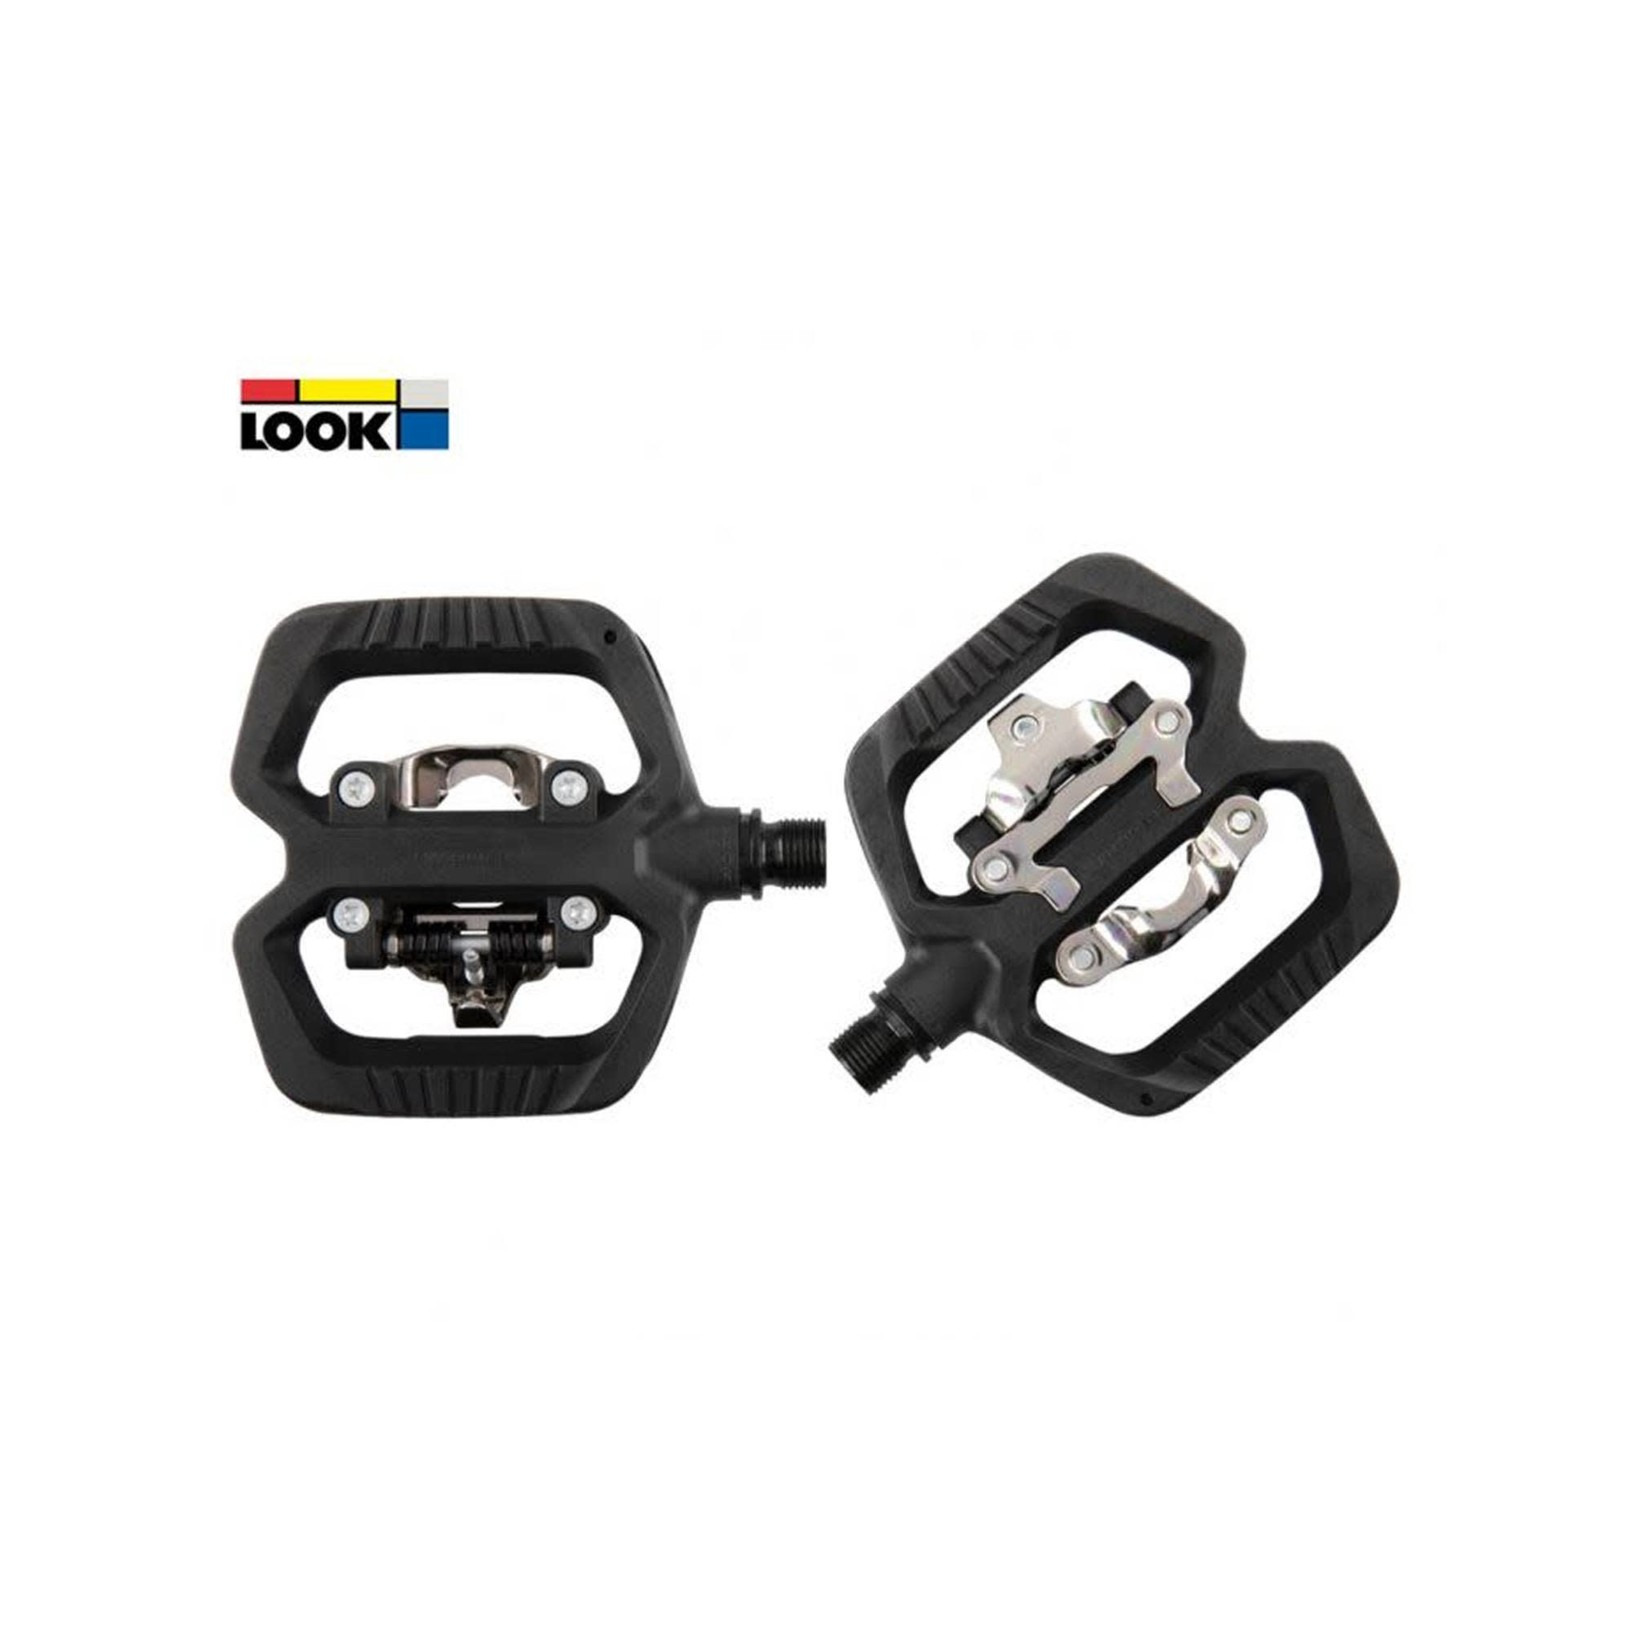 Look GEO Trekking Pedal with Cleats